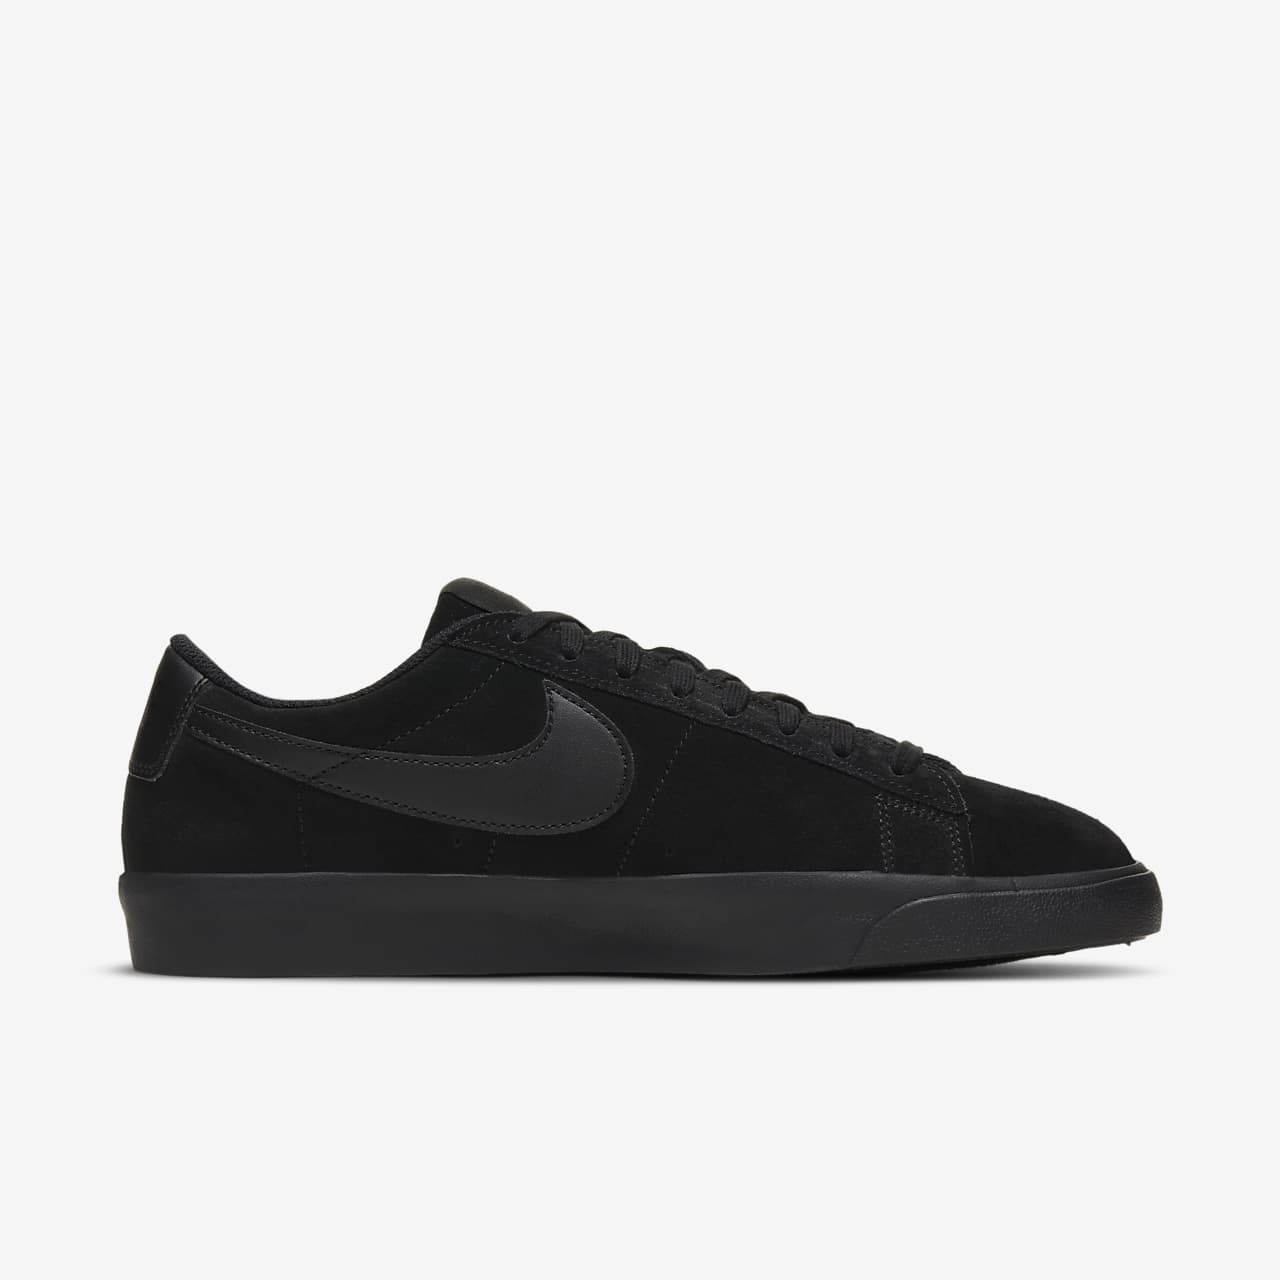 Nike Blazer Low Men's Shoe